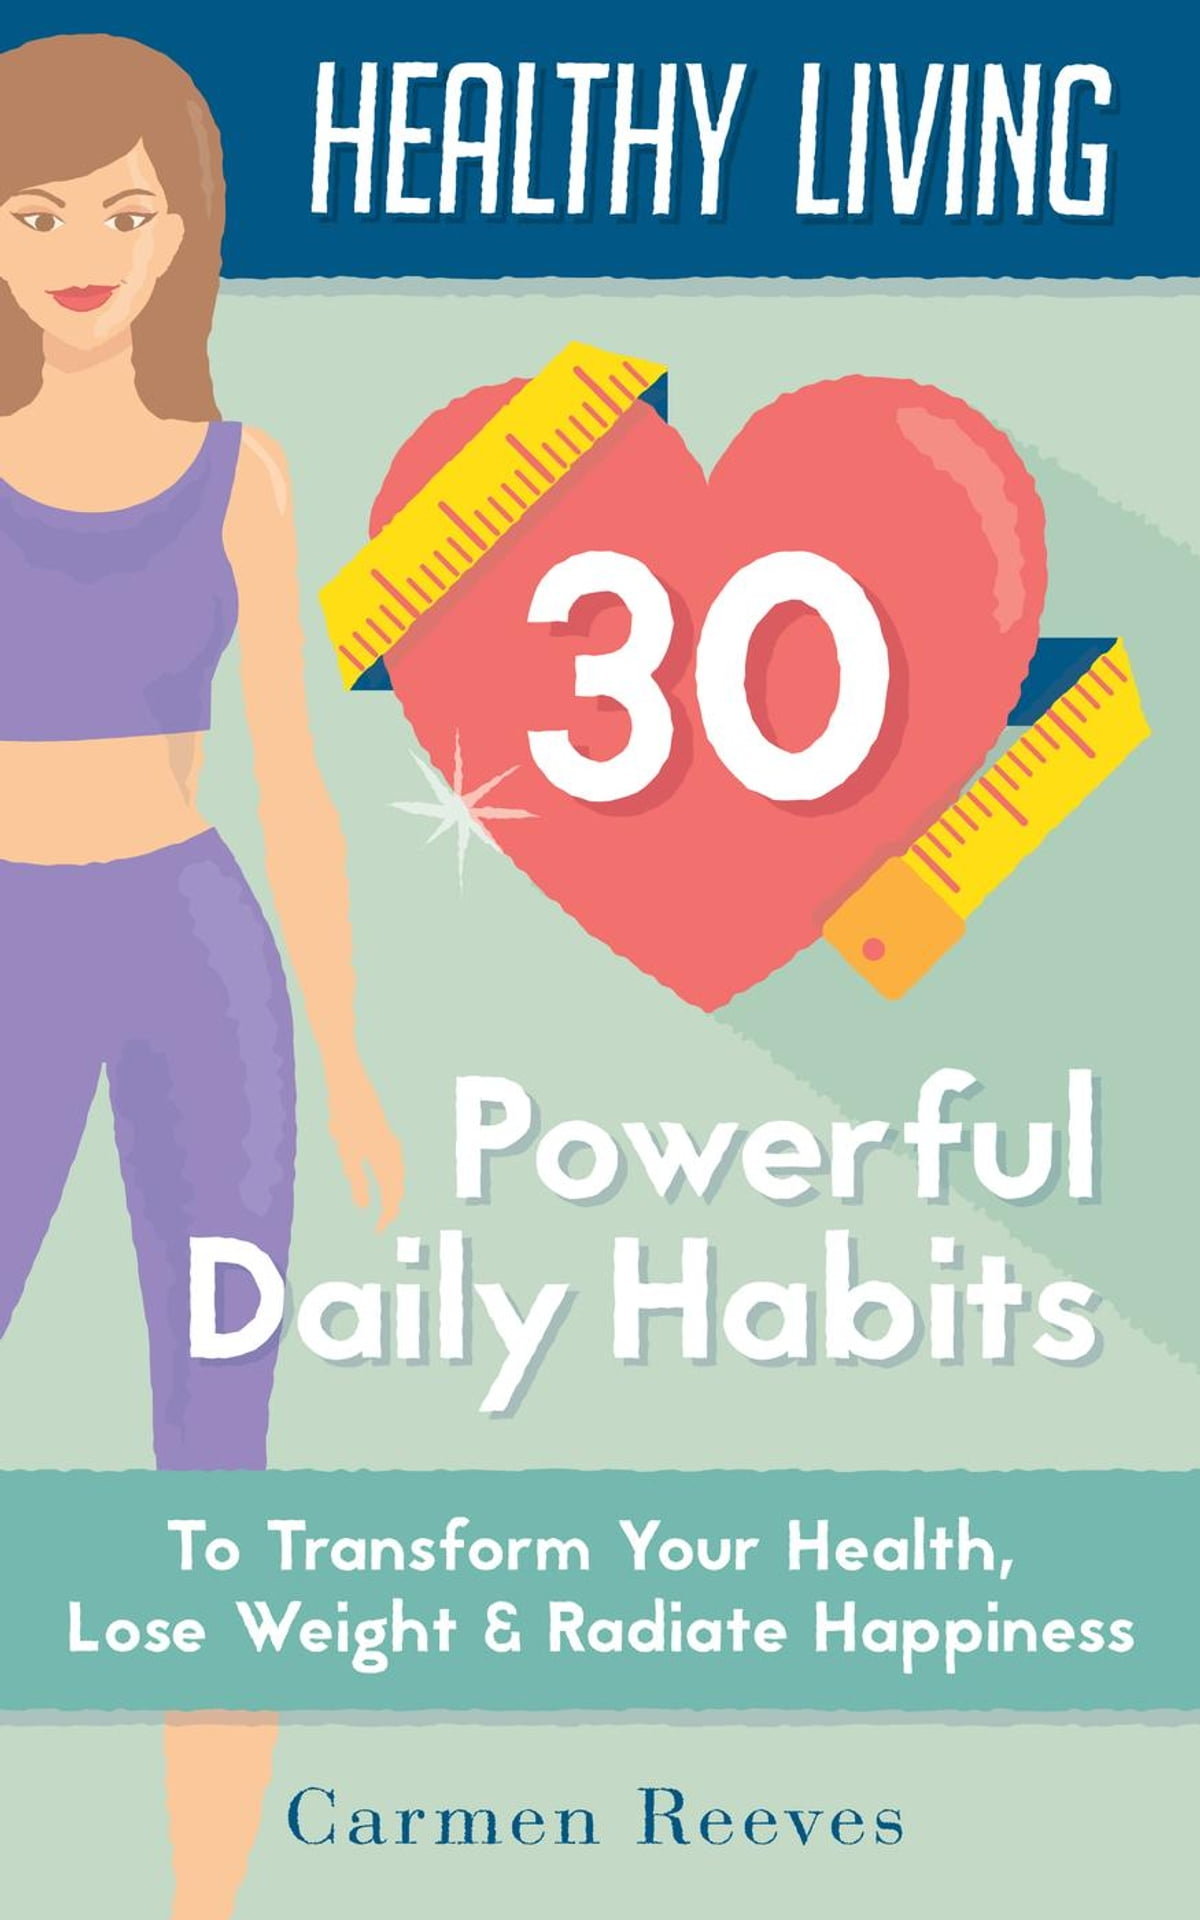 Carma Weight Loss : carma, weight, Healthy, Living:, Powerful, Daily, Habits, Transform, Health,, Weight, Radiate, Happiness, EBook, Carmen, Reeves, 9781524205959, Rakuten, United, States